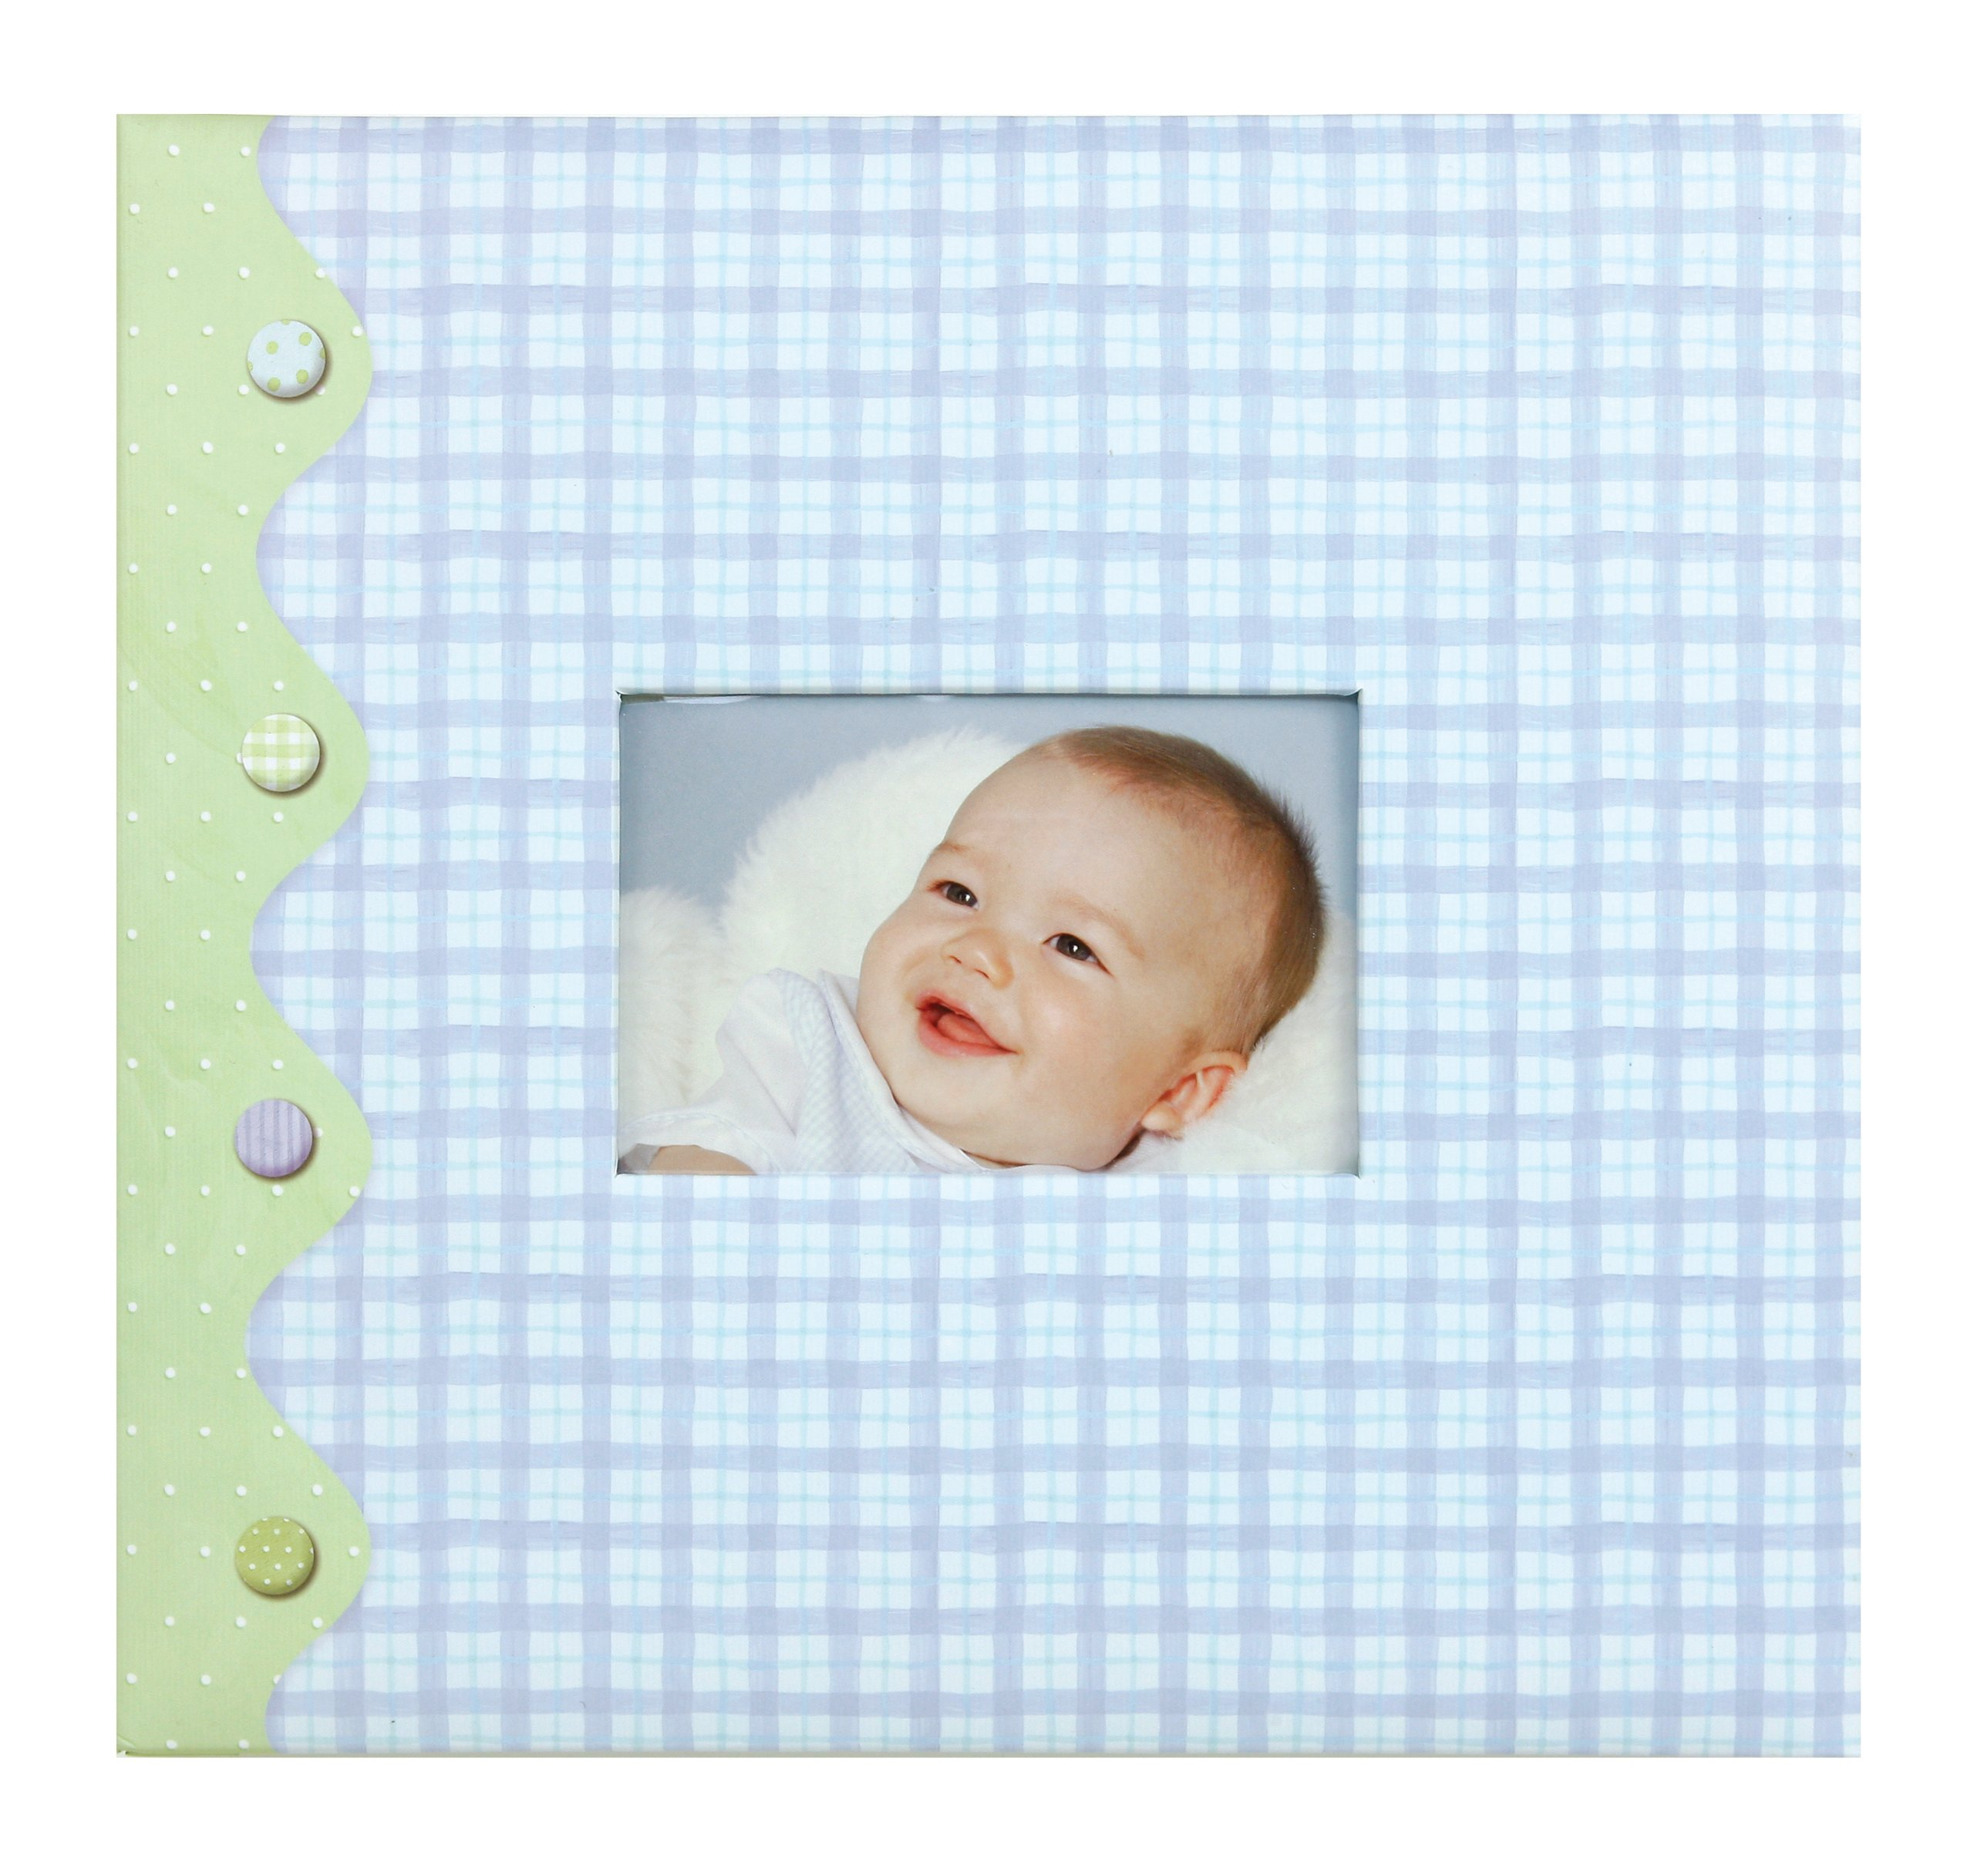 C.R. Gibson Complete Scrapbook Kit, 20 Illustrated Pages and 10 Protective Page Sleeves, Measures 12'' x 12'' - Little Pond Baby Boy